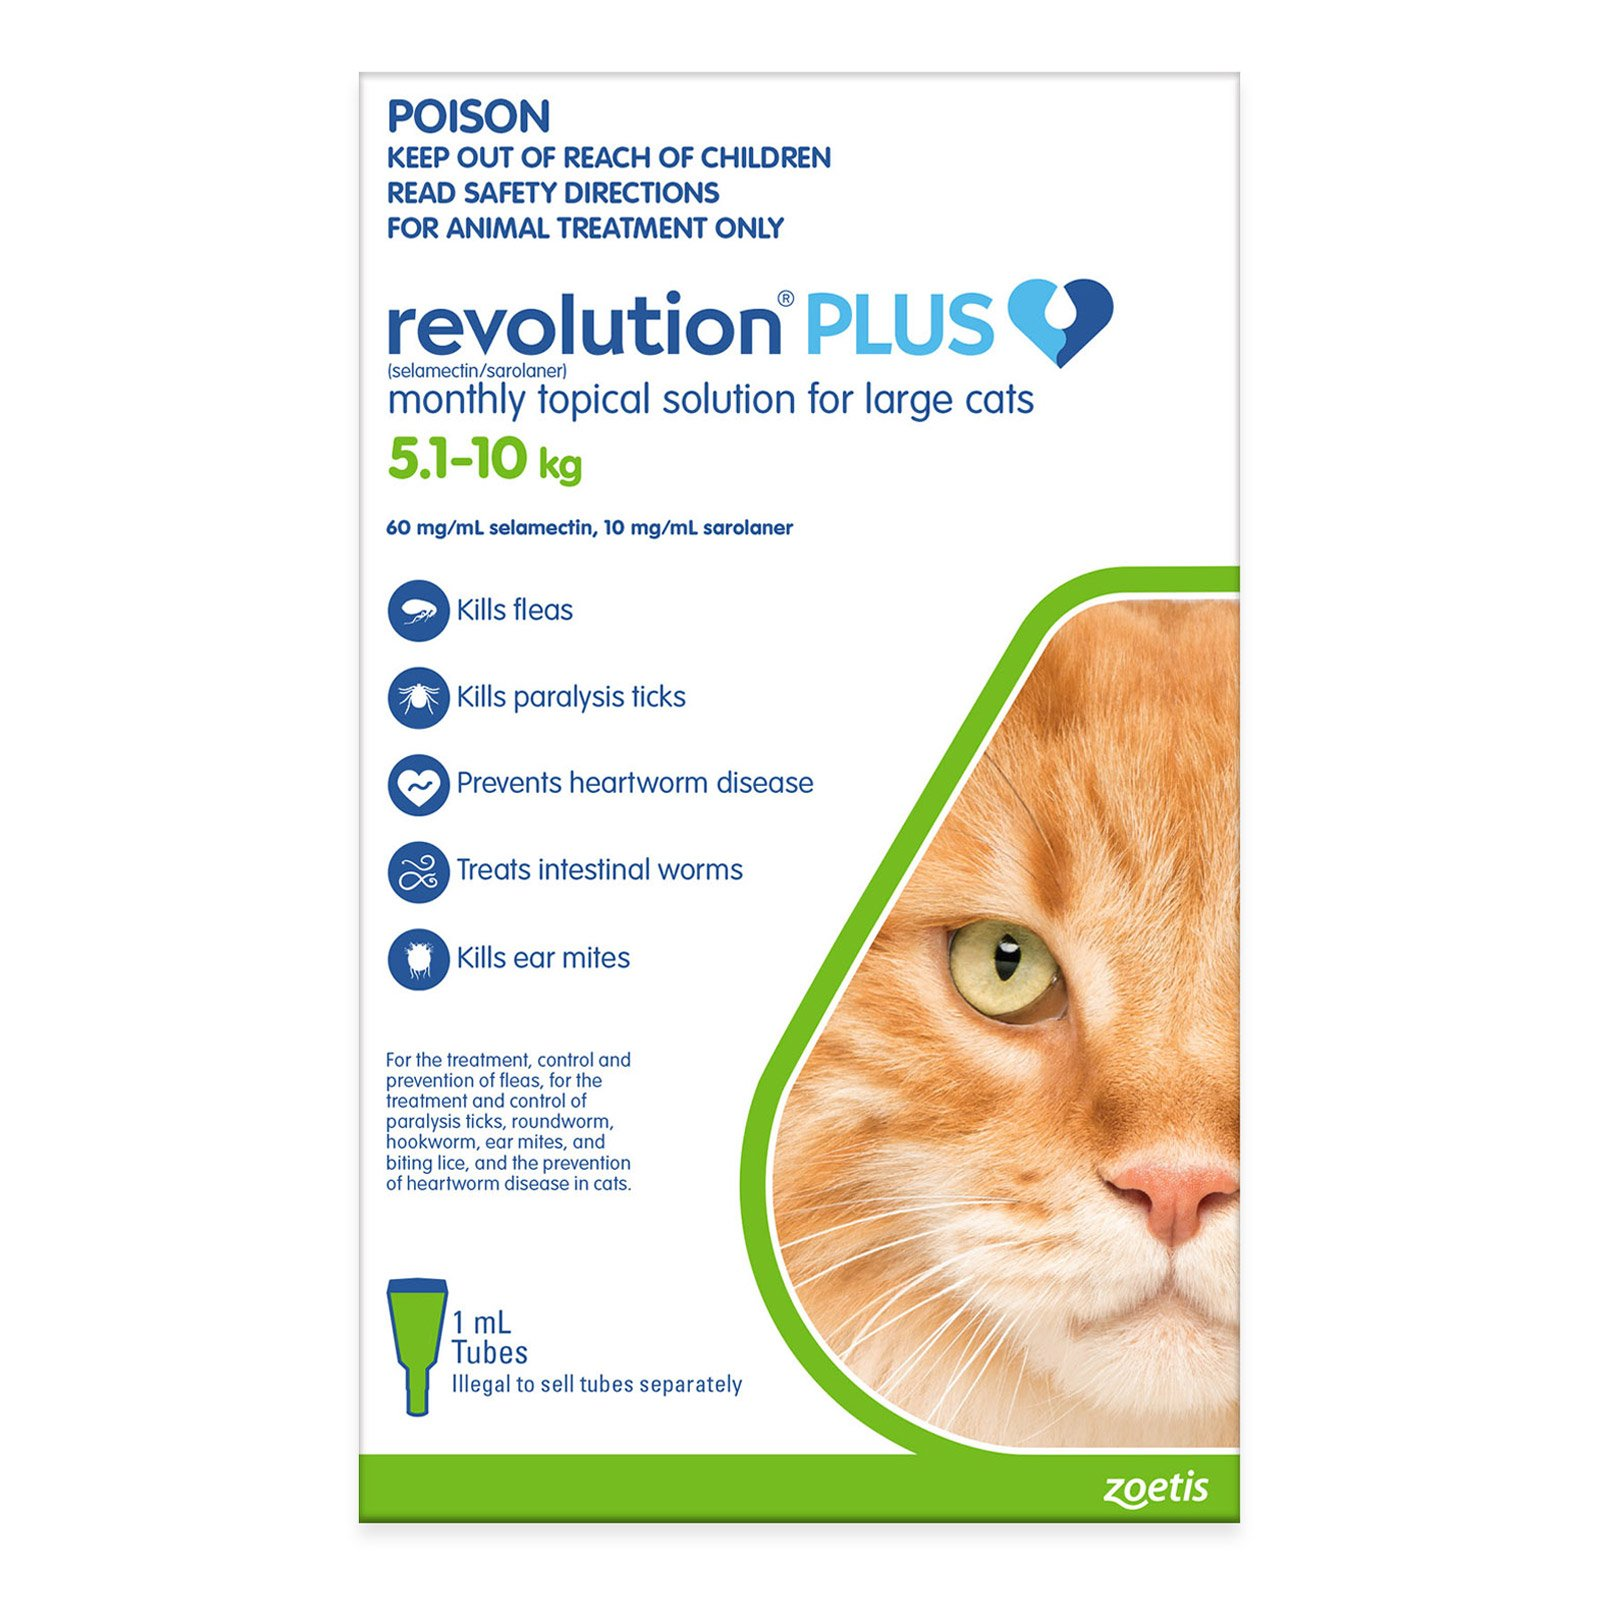 637037199217632085Revolution-plus-for-large-cats-5.1-10kg-green.jpg